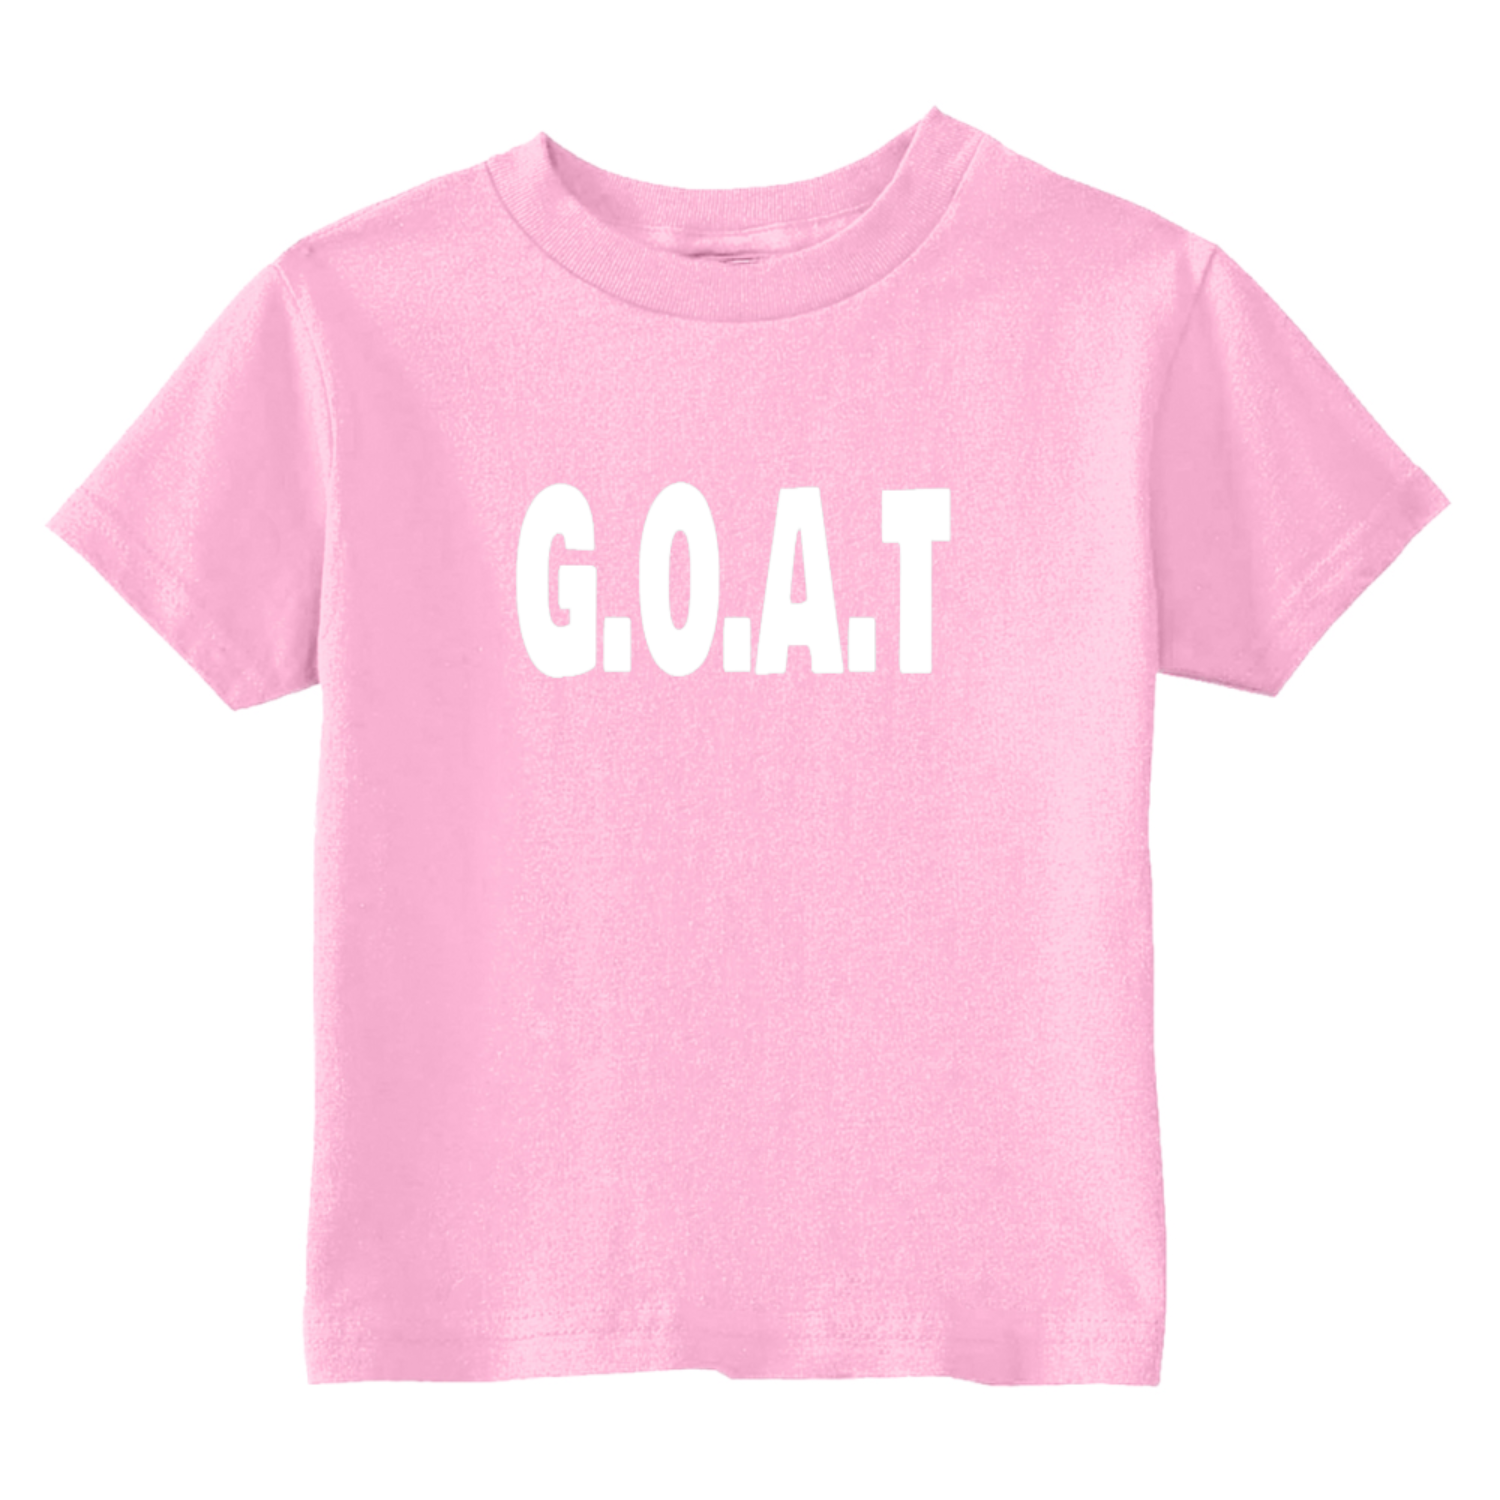 GOAT Greatest Of All Time Toddler T-Shirt Light Pink